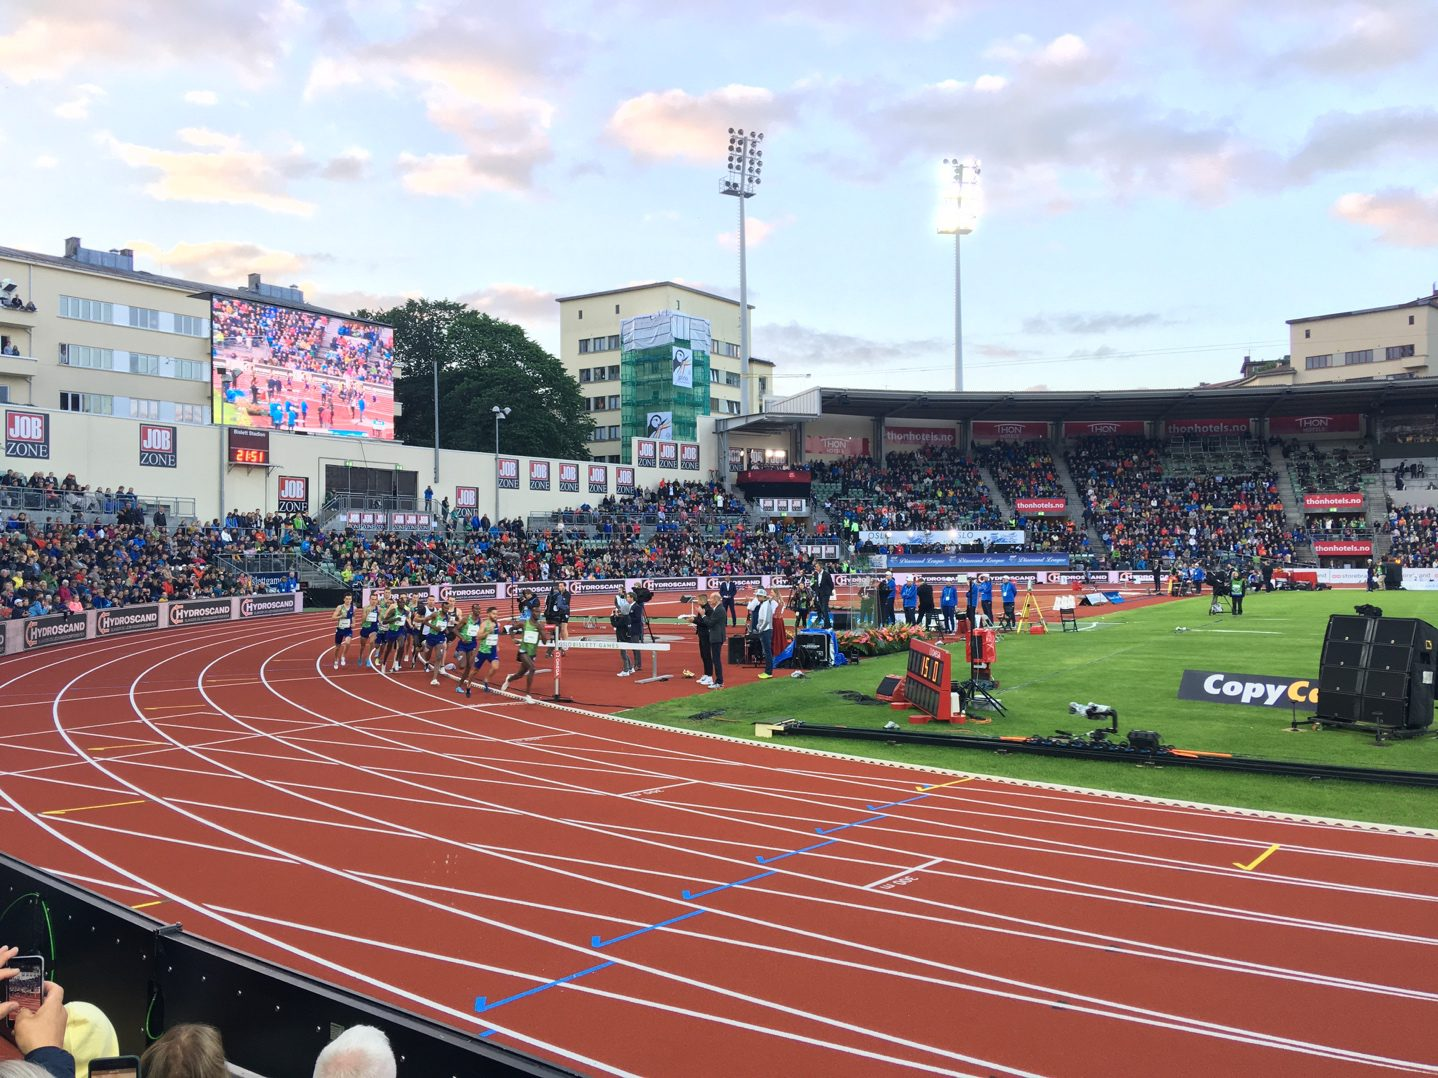 Diamond League meet, Bislett Stadium, Oslo